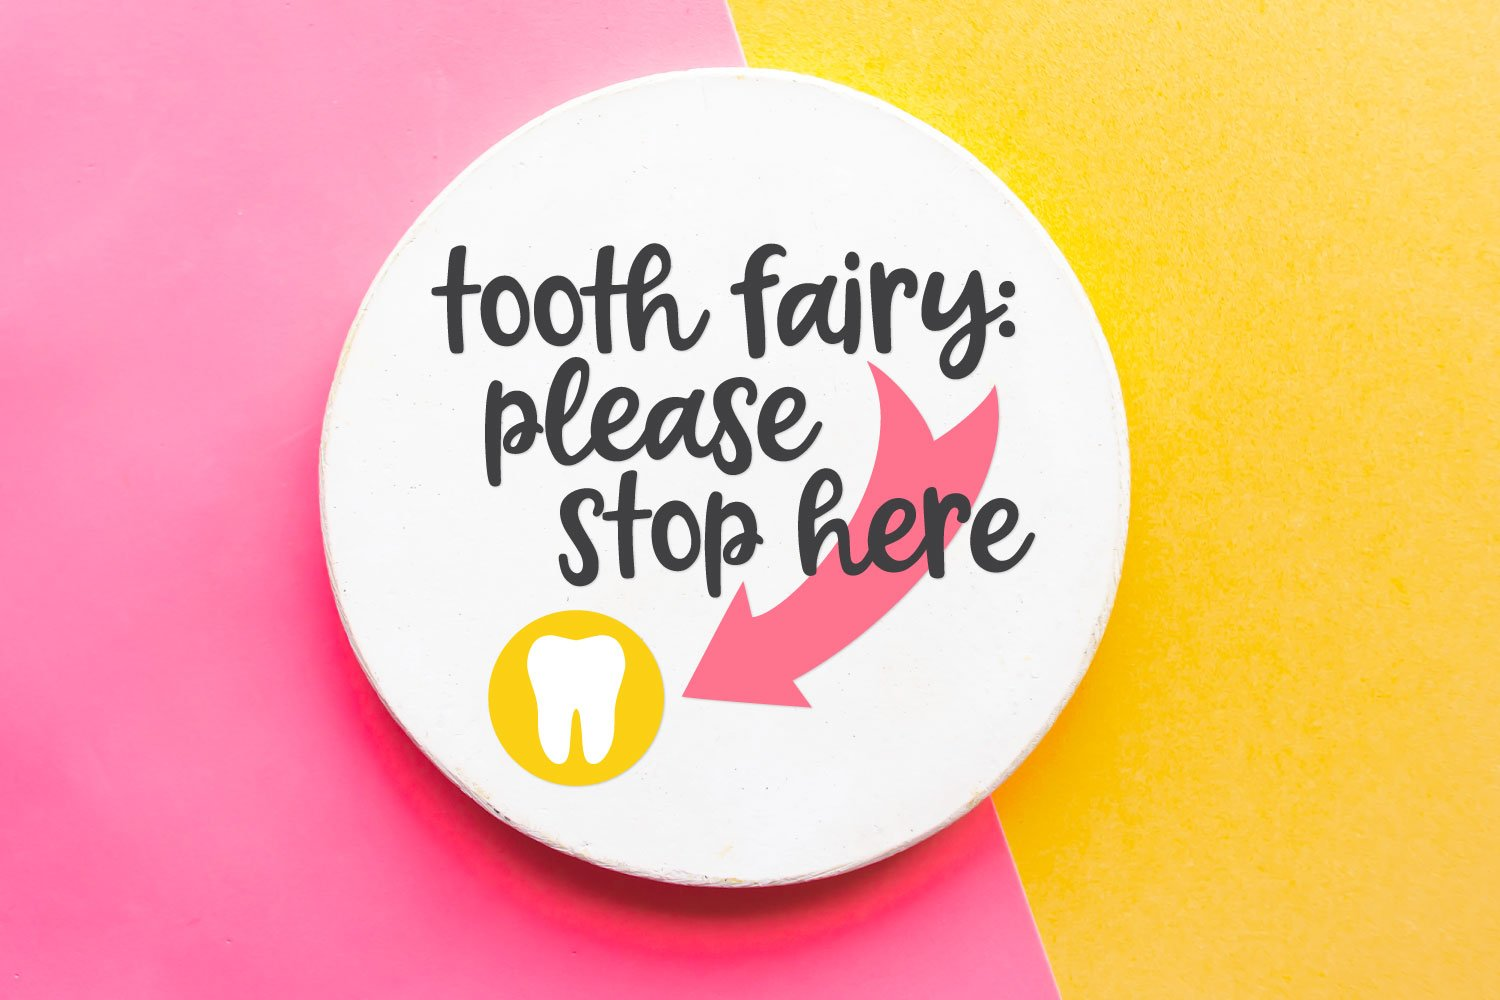 Tooth Fairy Please Stop Here SVG image